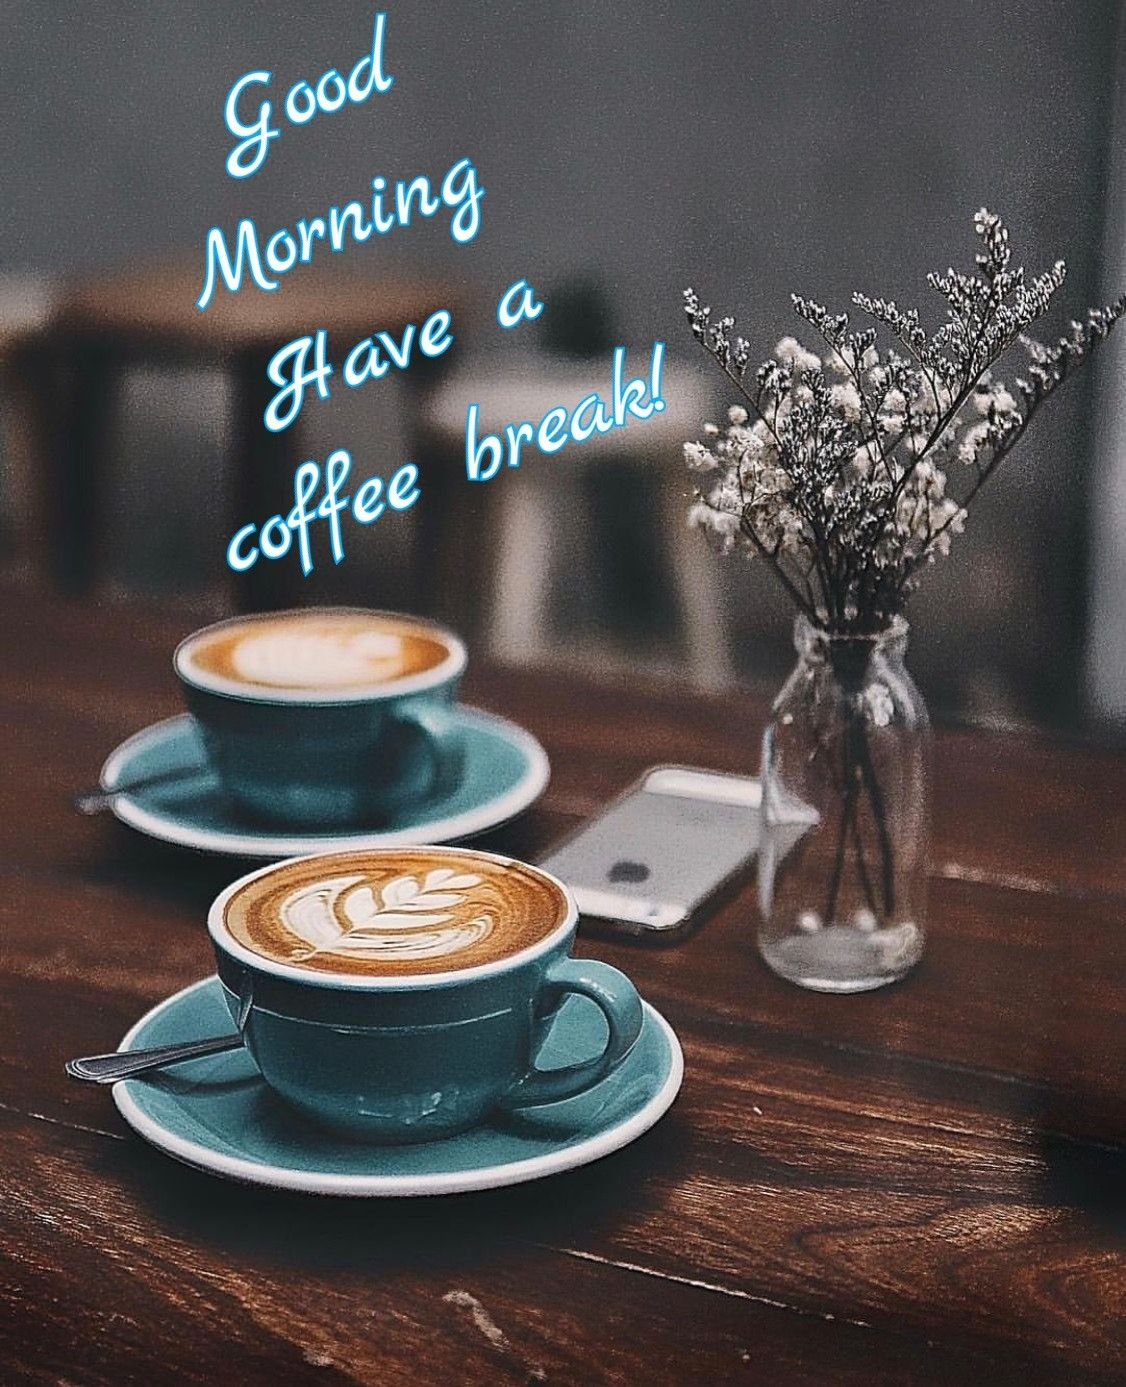 Good Morning And A Cup Of Coffee With Images Coffee